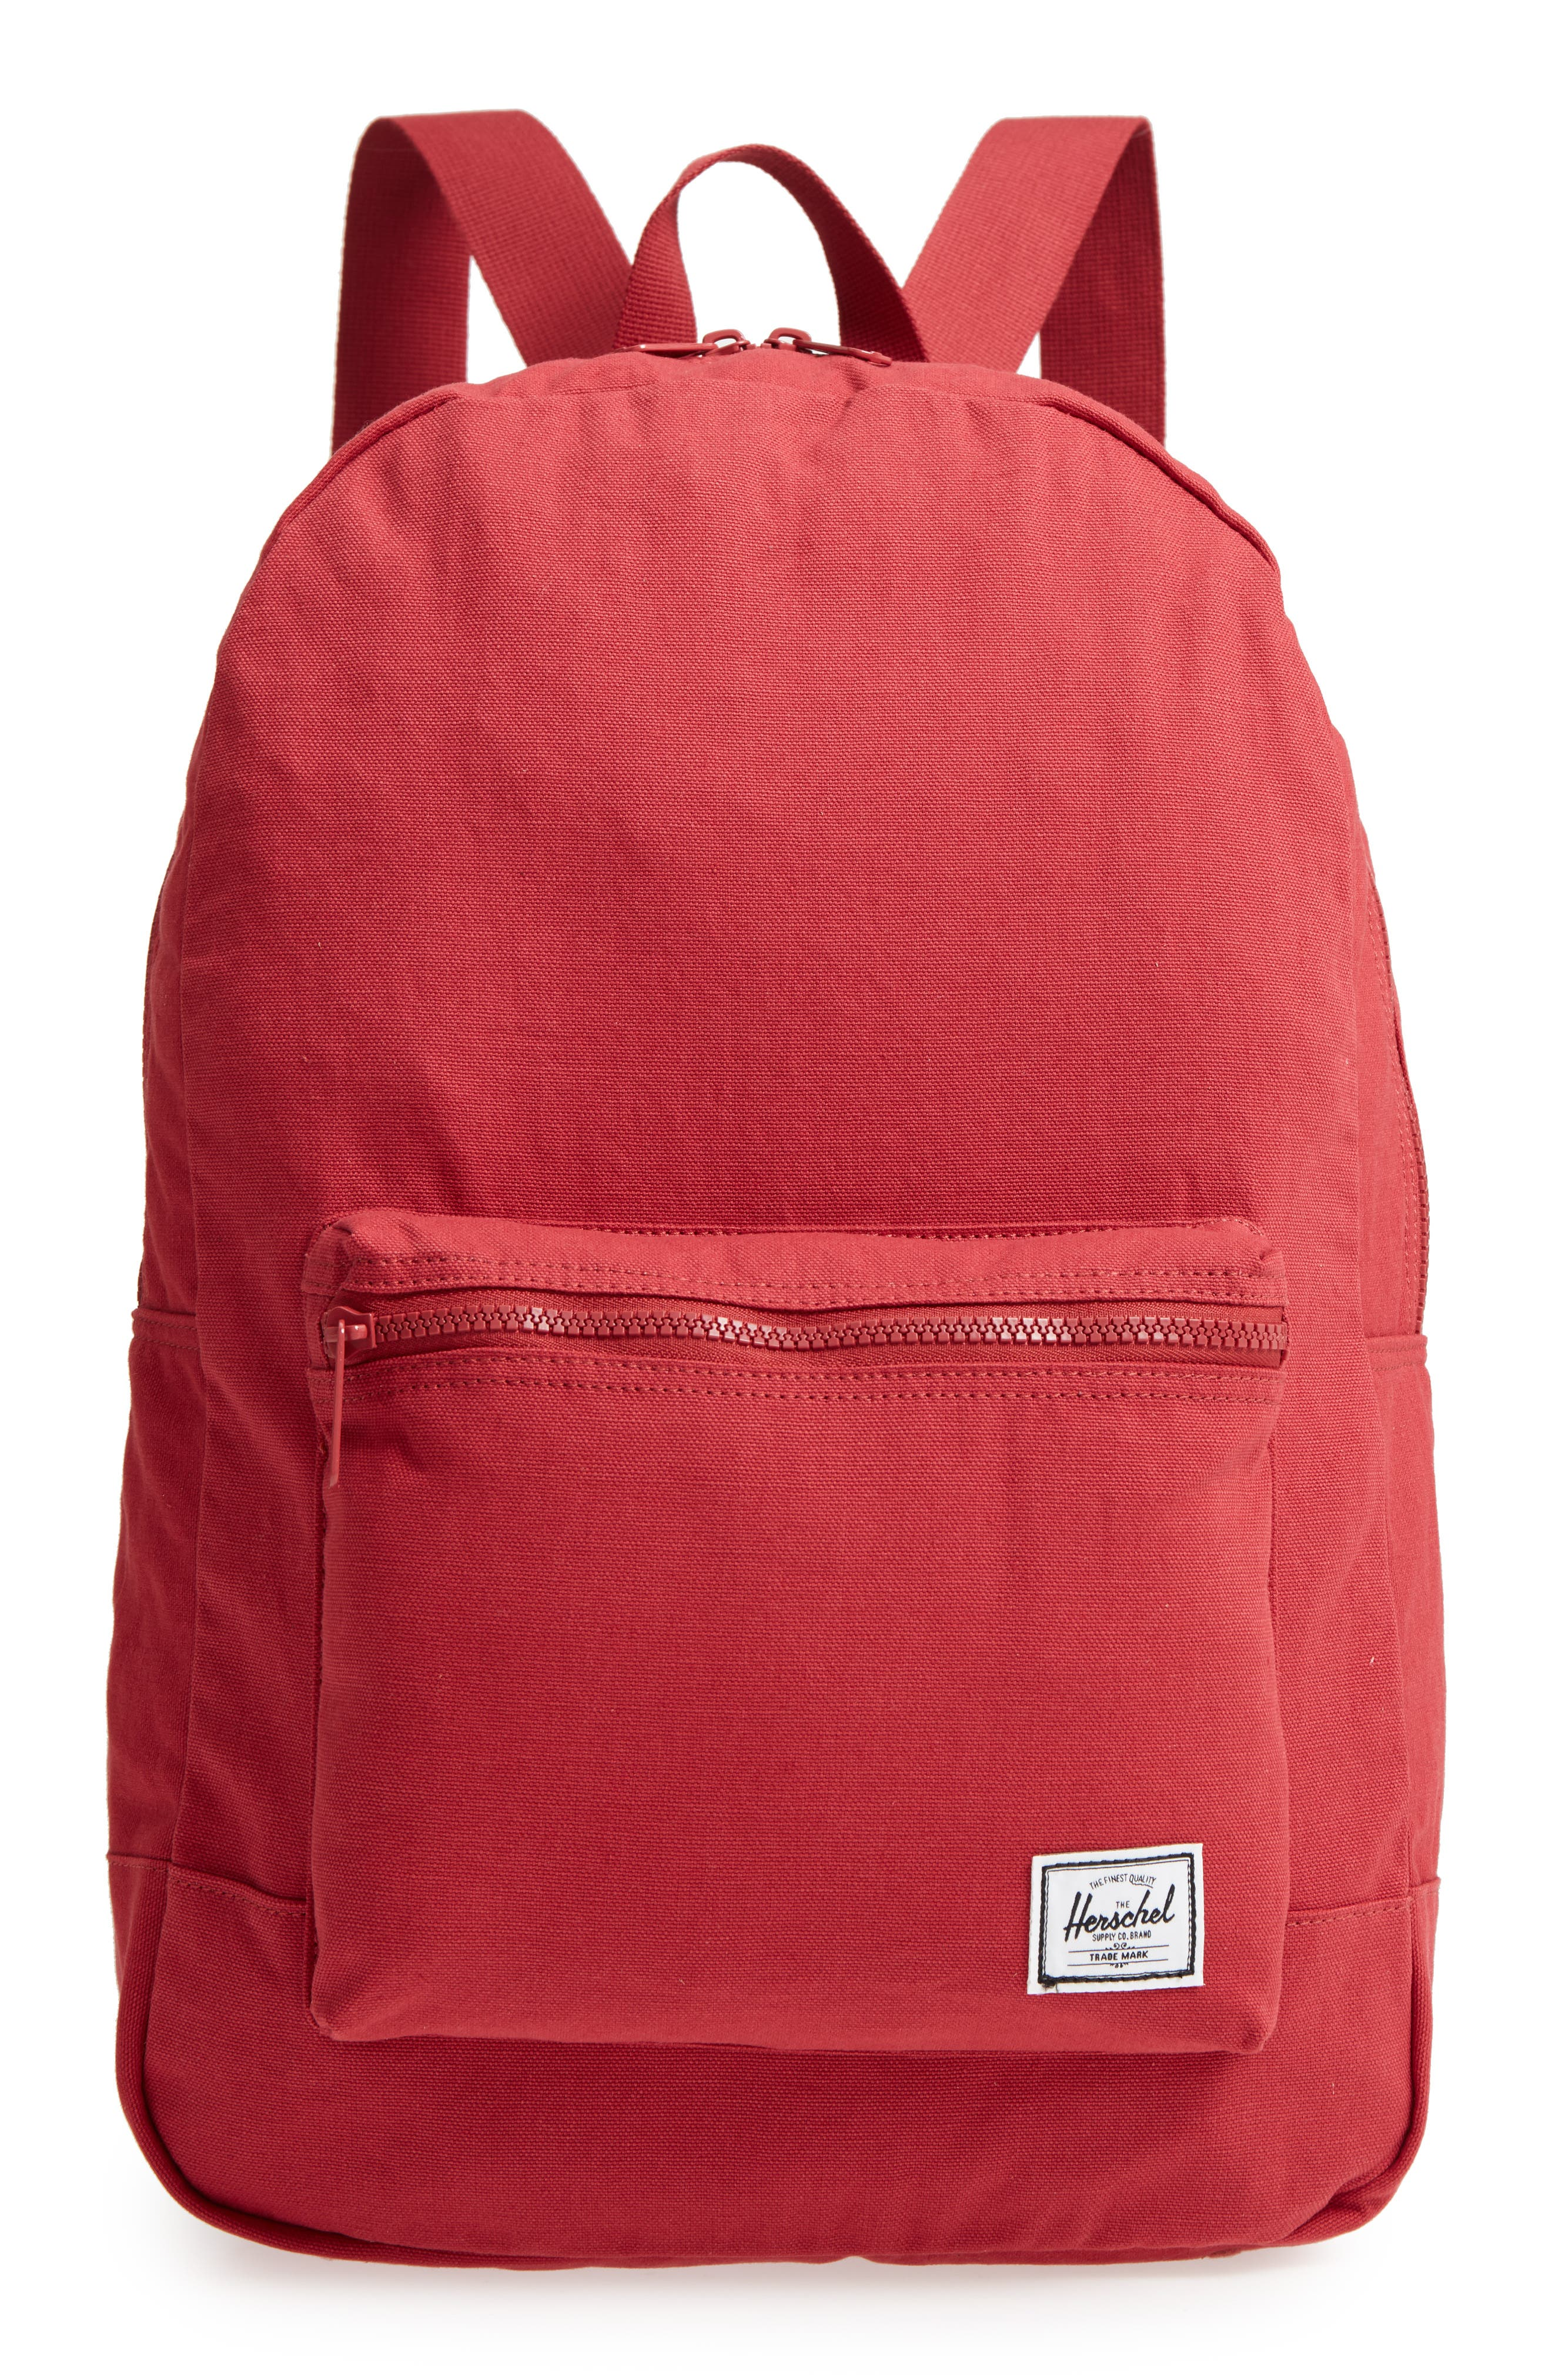 Cotton Casuals Daypack Backpack,                             Main thumbnail 3, color,